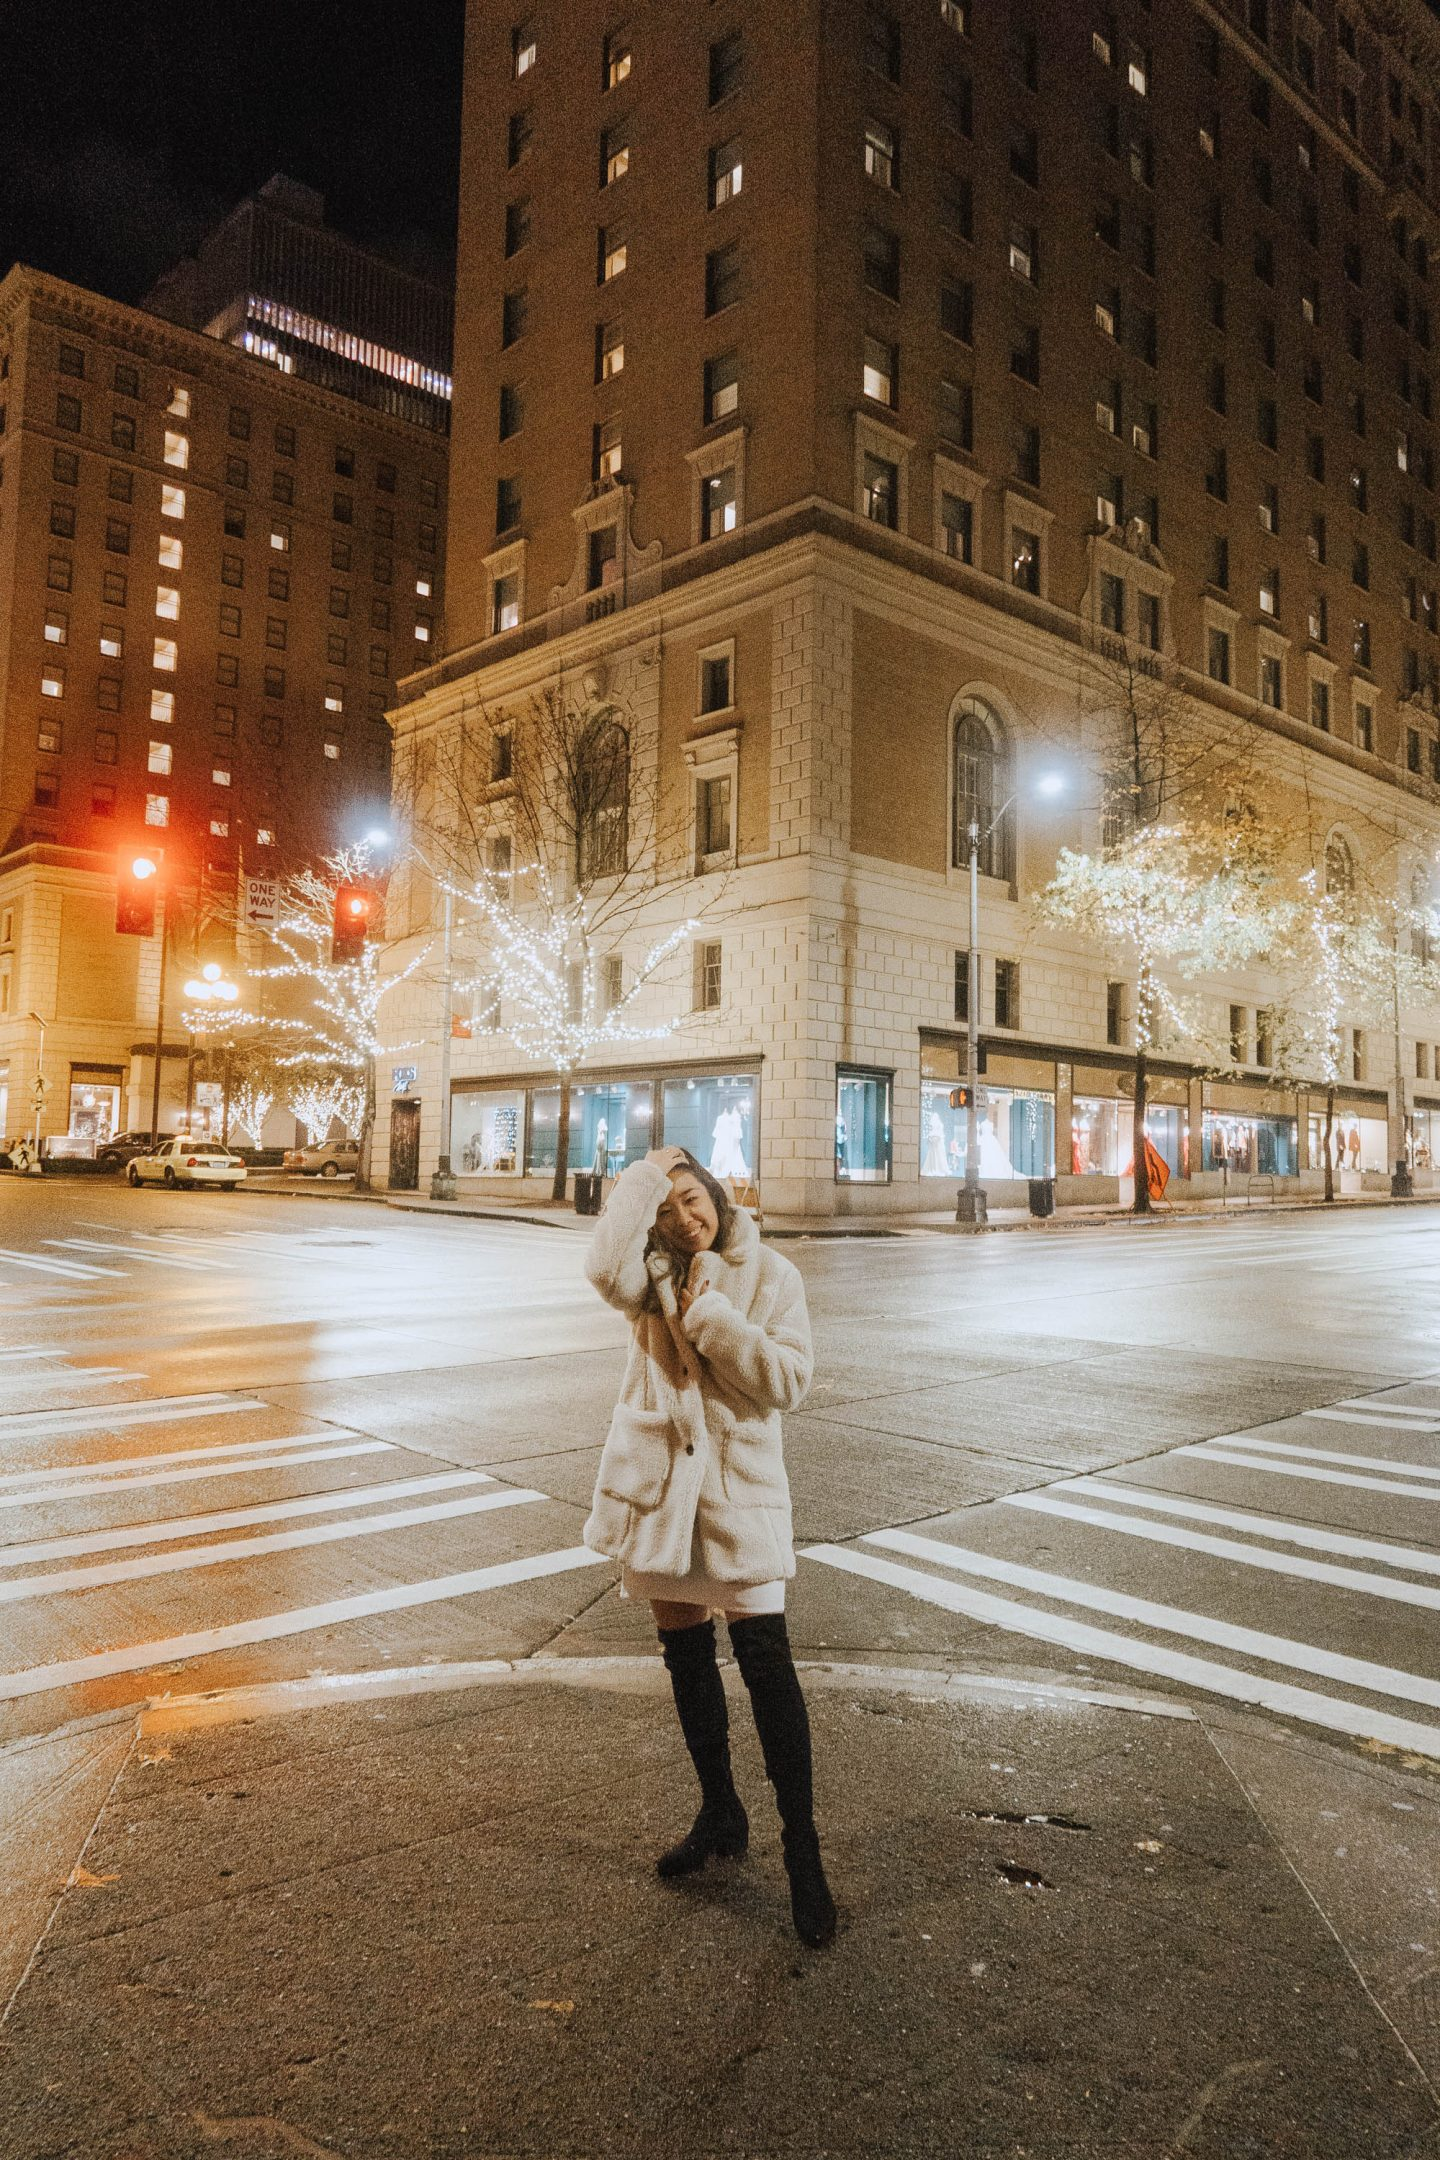 Posing on a street corner in downtown Seattle at night